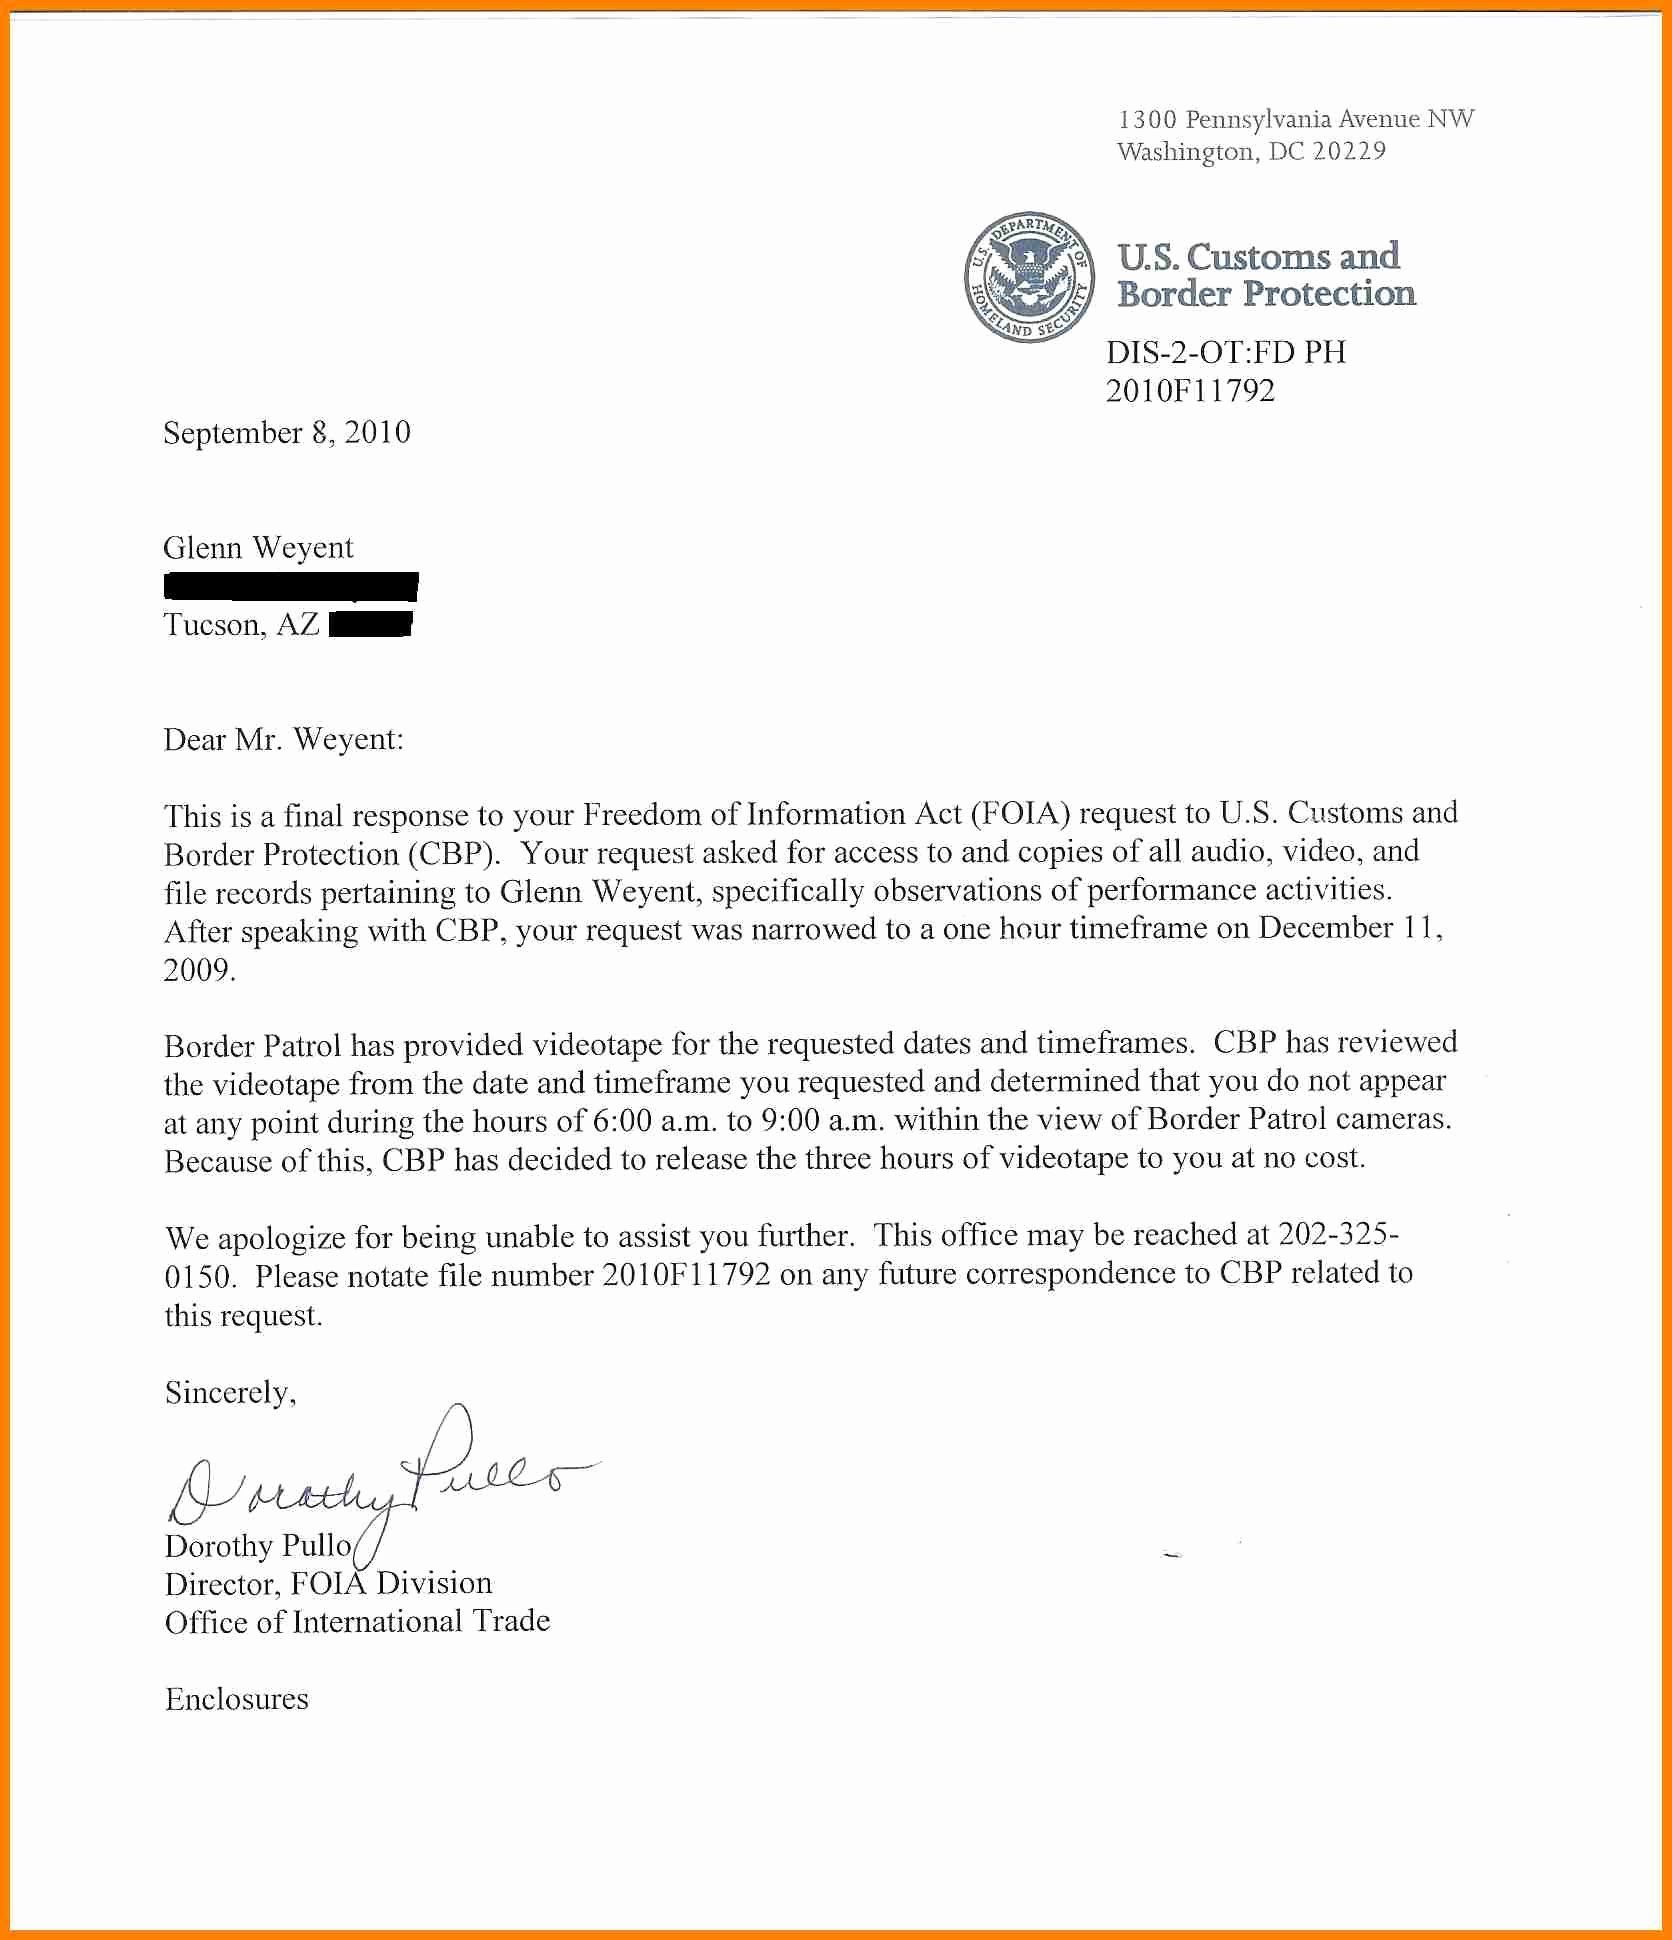 Reference Letter for Immigration Lovely 7 Re Mendation Letter for Immigration for A Friend